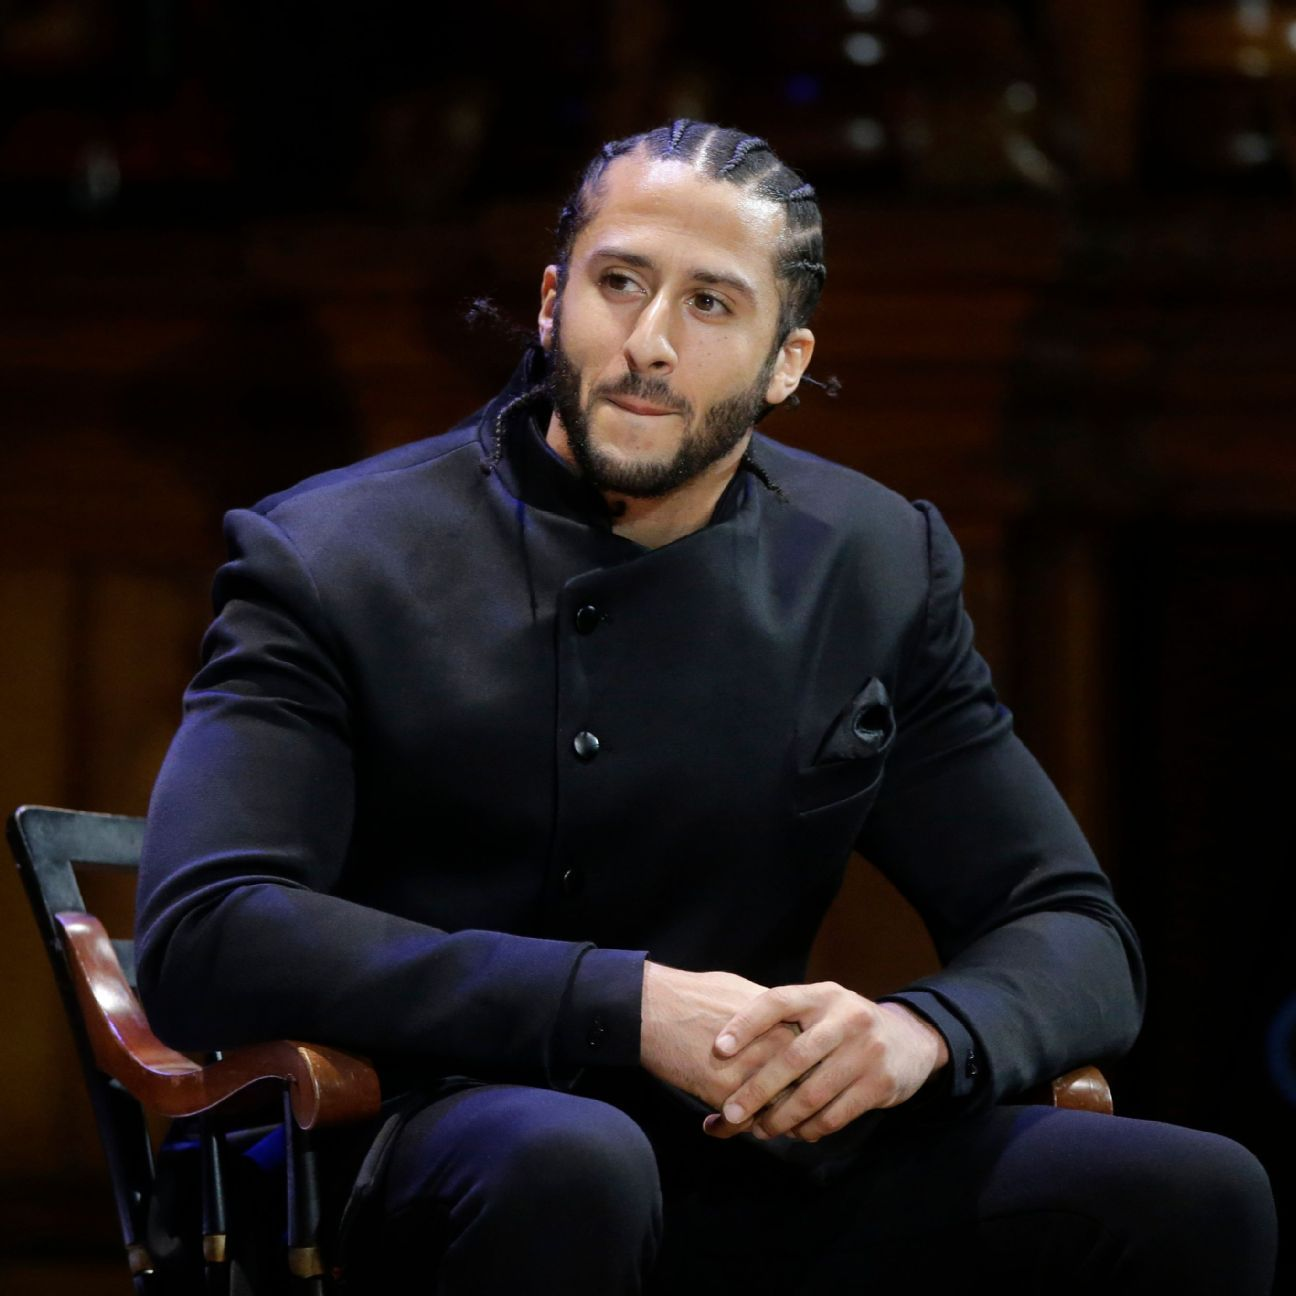 Alliance of American Football tried wooing QB Colin Kaepernick